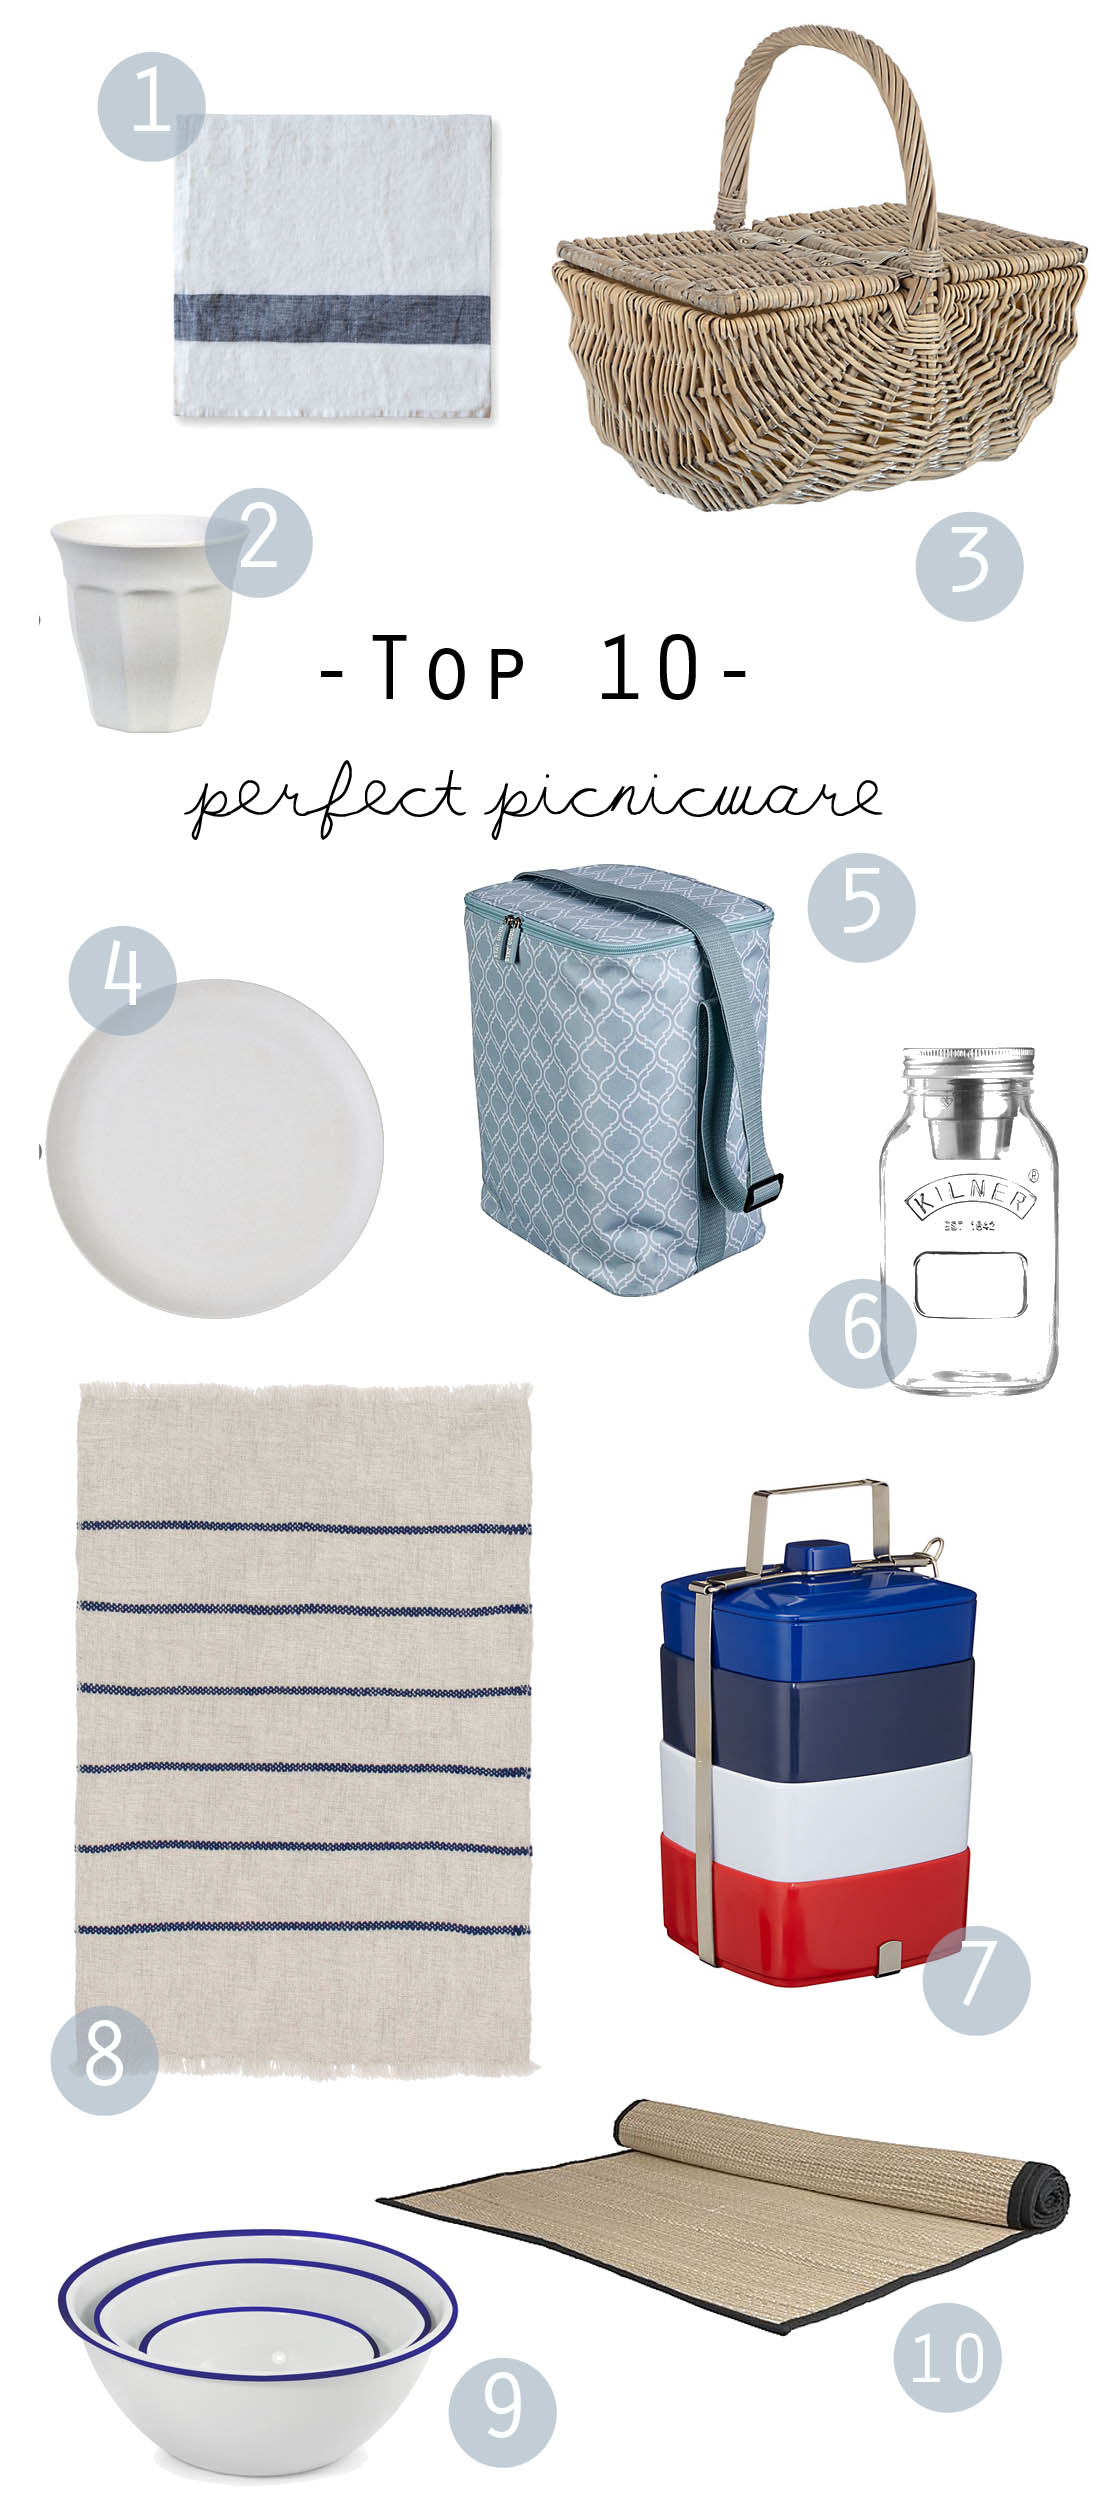 Perfect picnicware | Apartment Apothecary